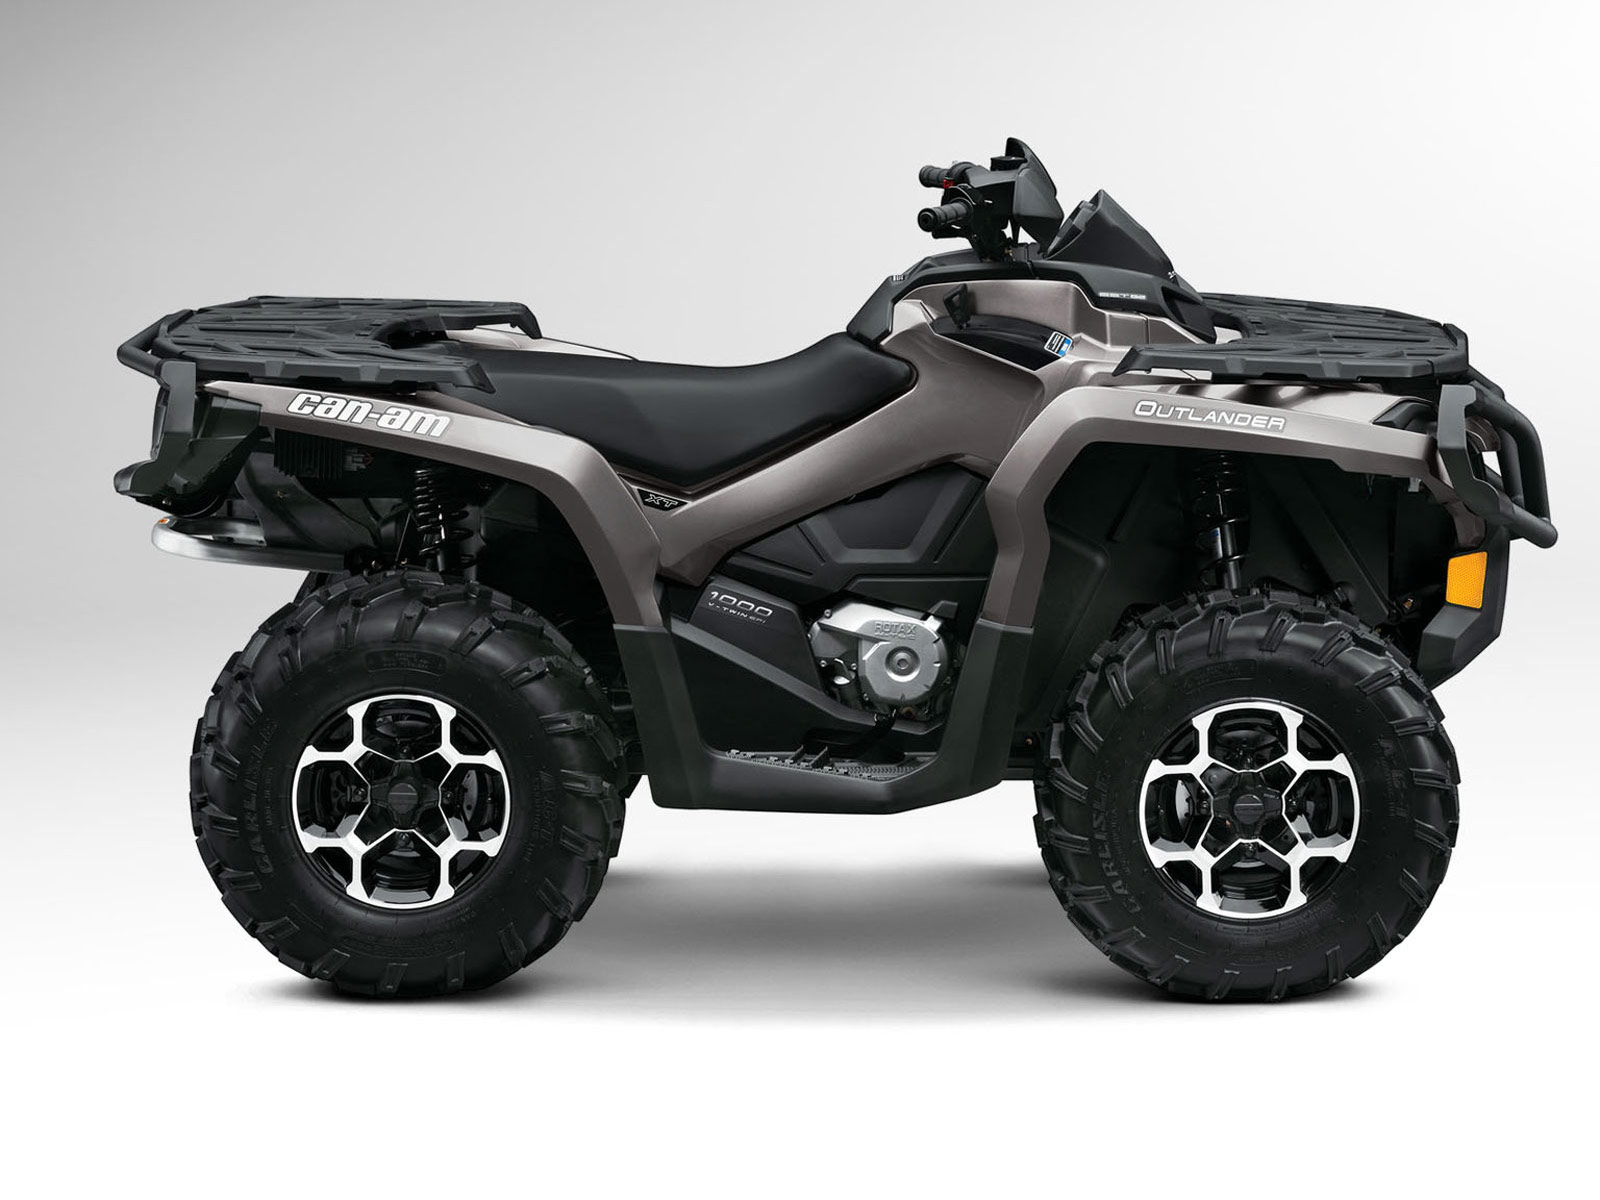 can am ds 650 wiring diagram best wiring library Mini ATV Wiring Diagram can am outlander engine diagram wiring library rh 42 skriptoase de 07 arctic cat 650 h1